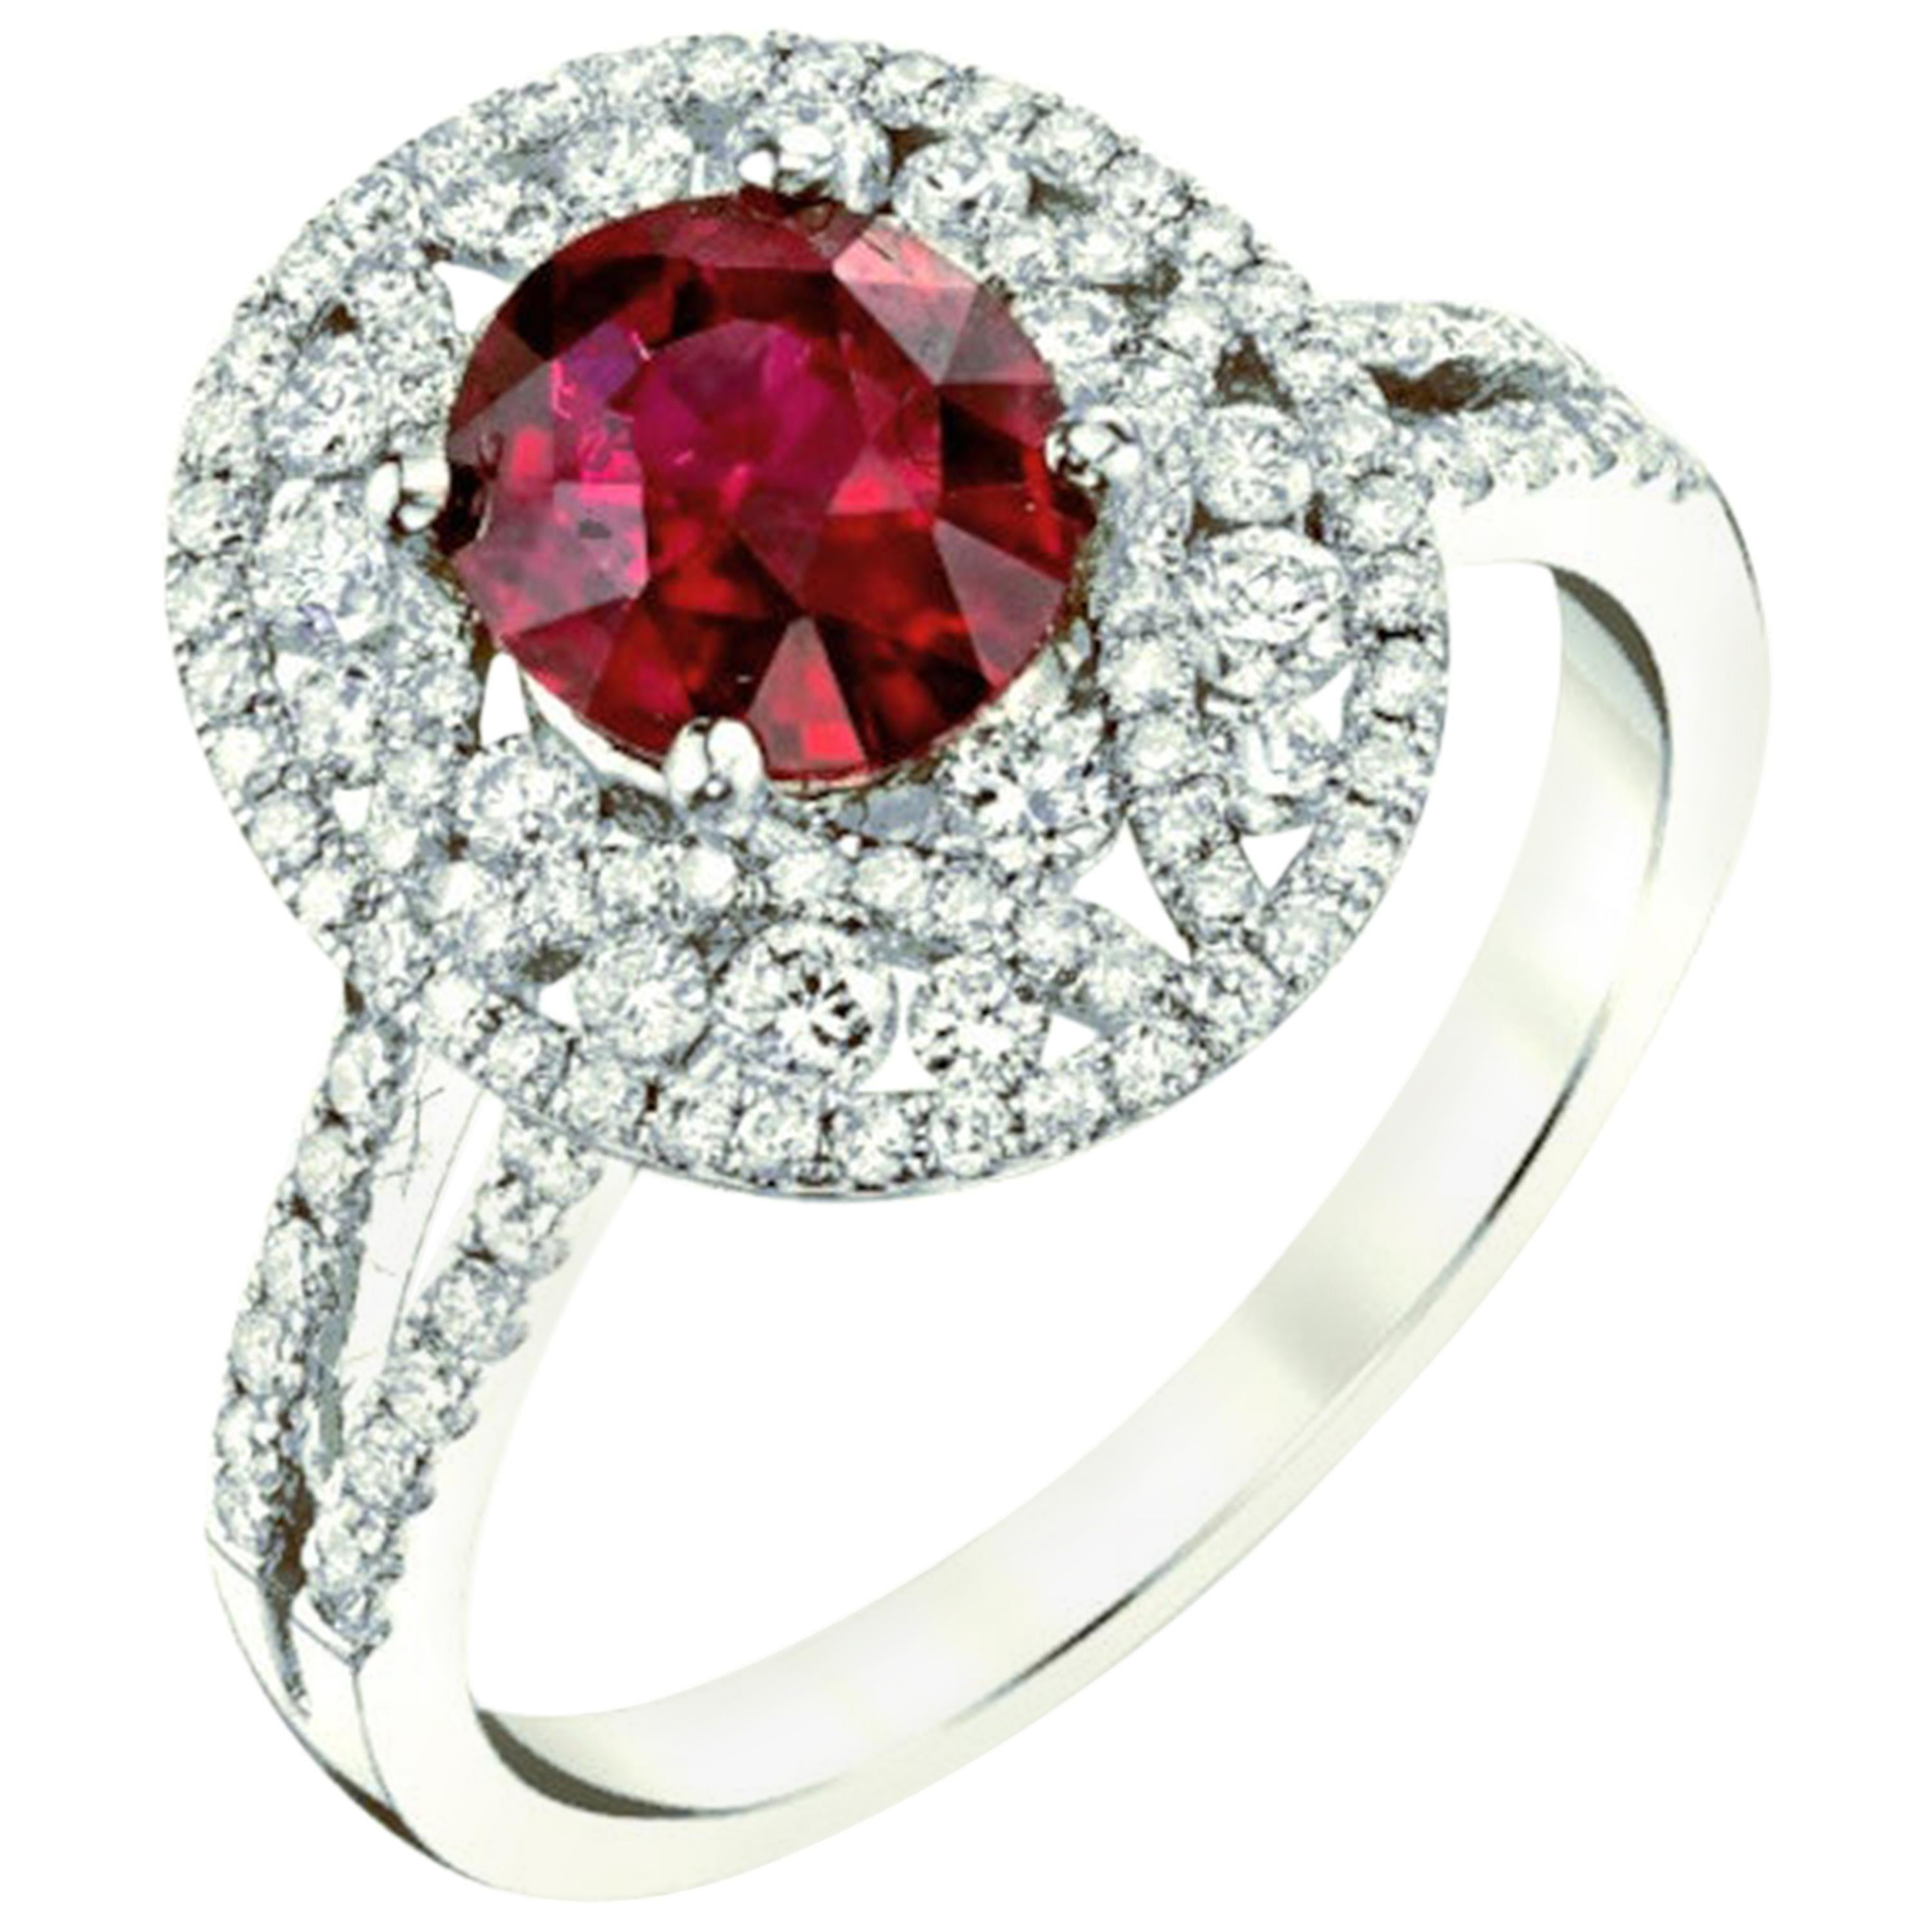 Edwardian Inspired 1.57 Carat GIA Ruby and Diamond Halo White Gold Cocktail Ring